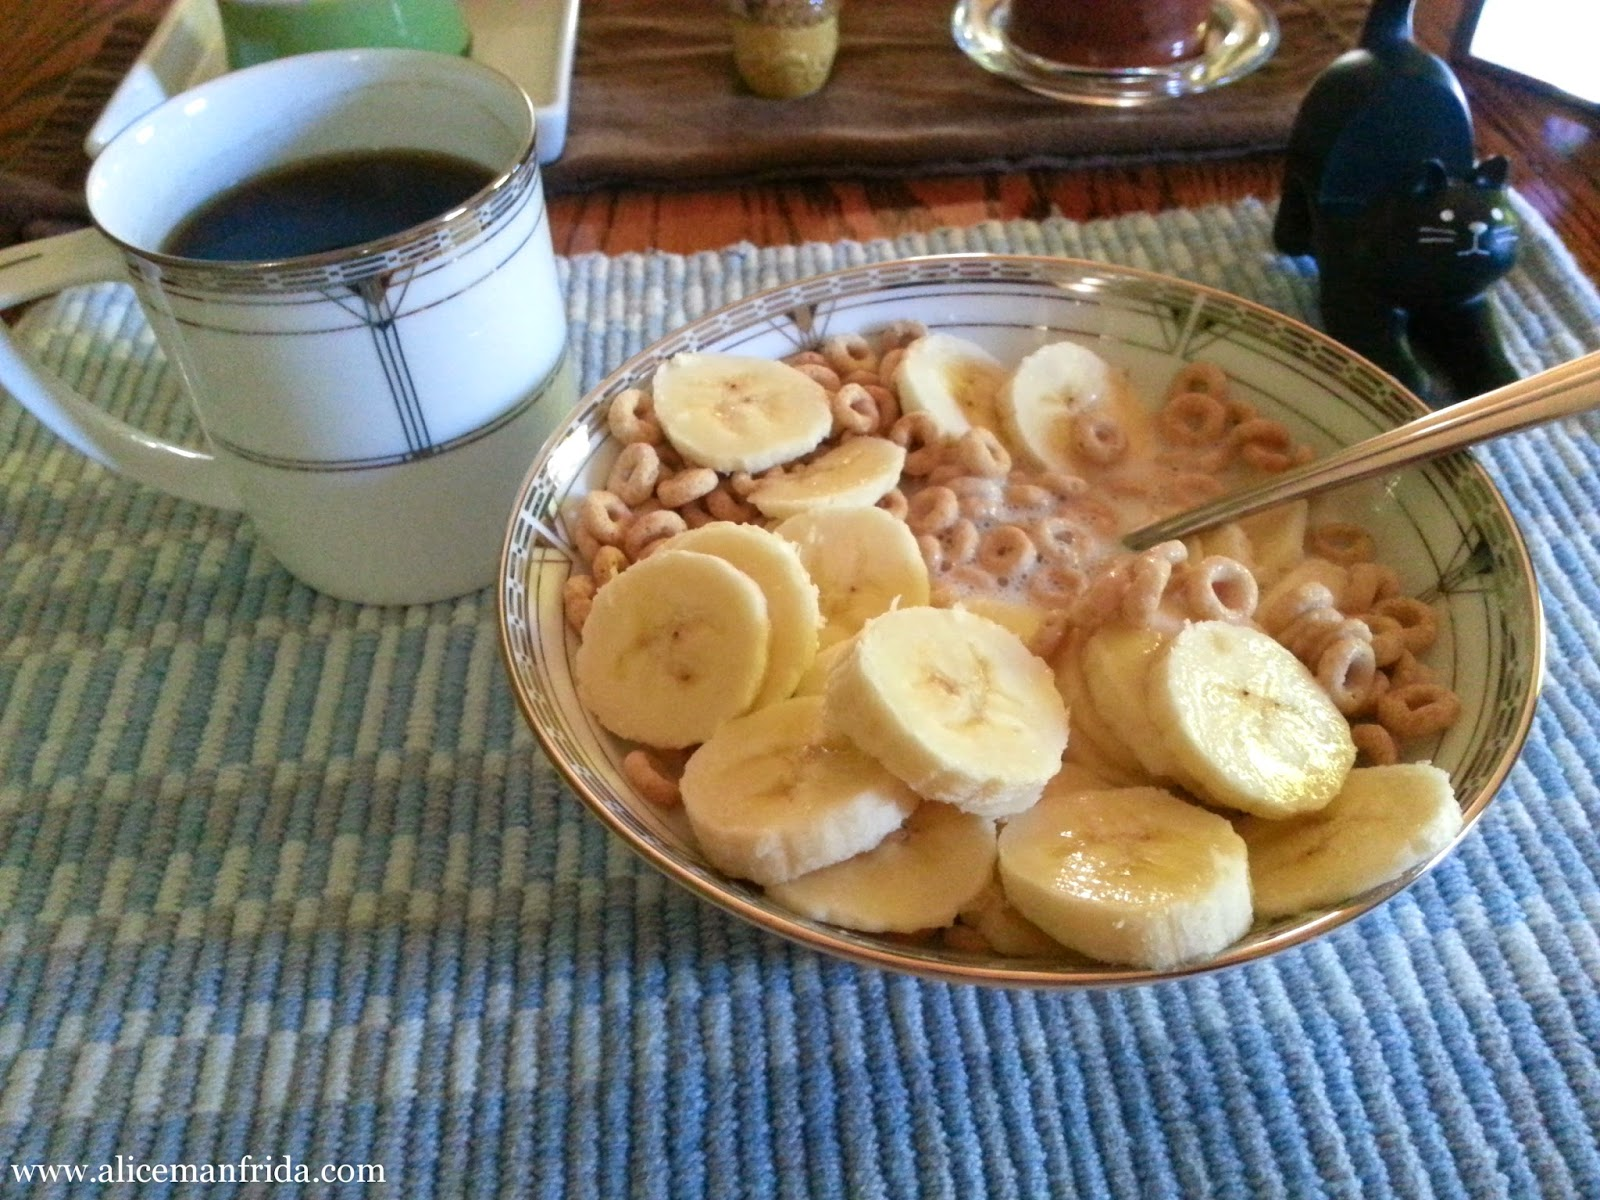 Cheerios, banana, black coffee, Tasty Tuesday